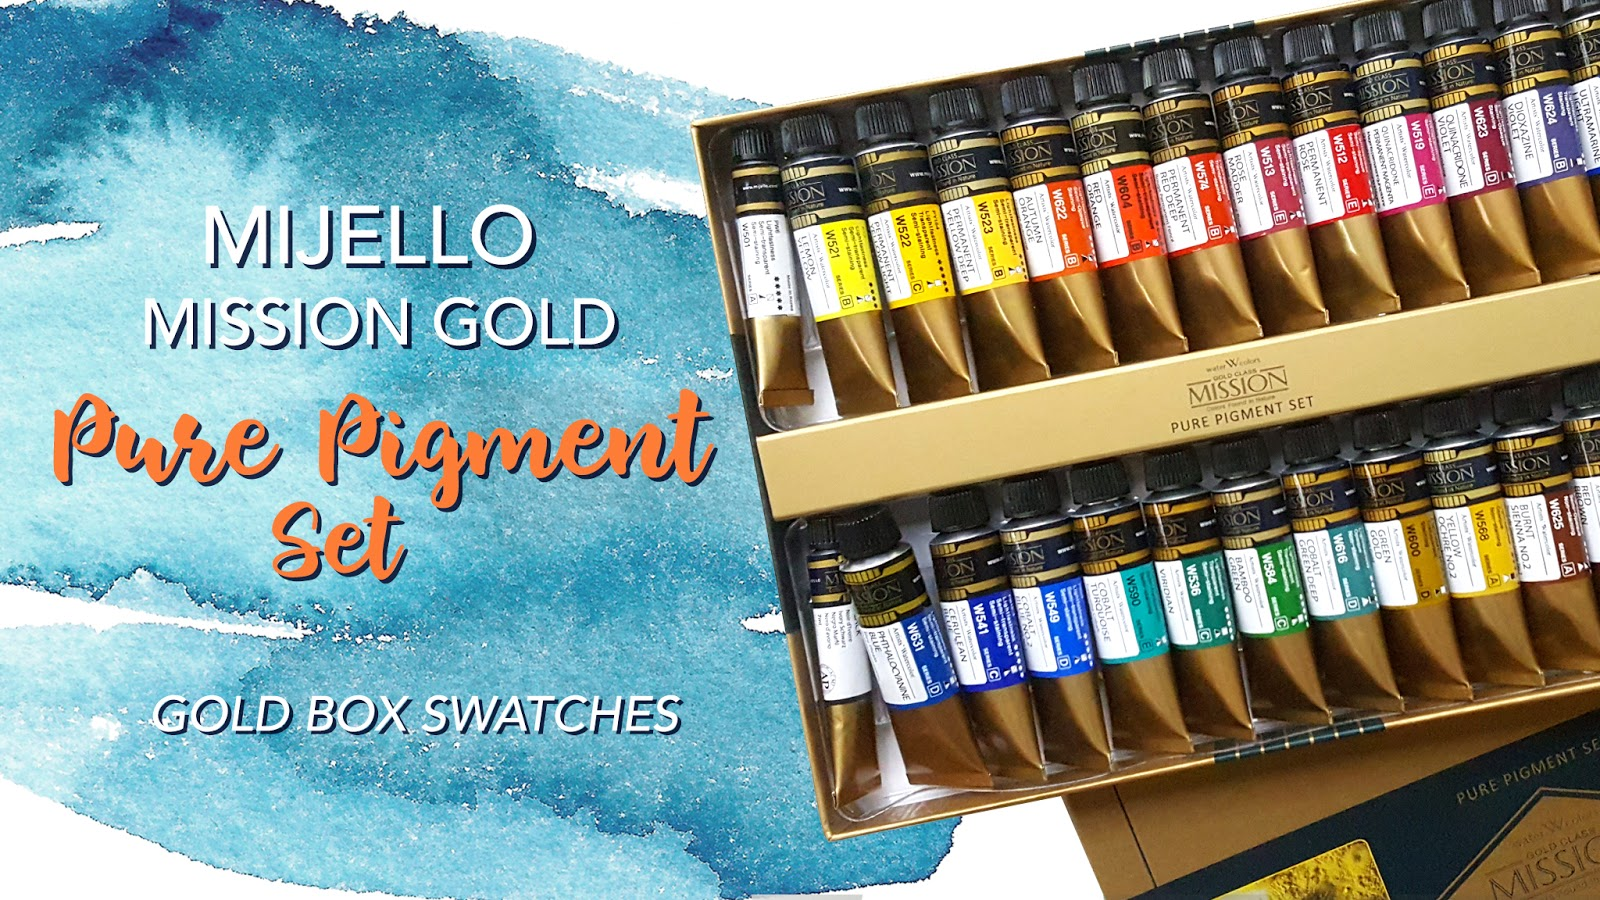 Mijello Mission Gold Pure Pigment Set Golden Box